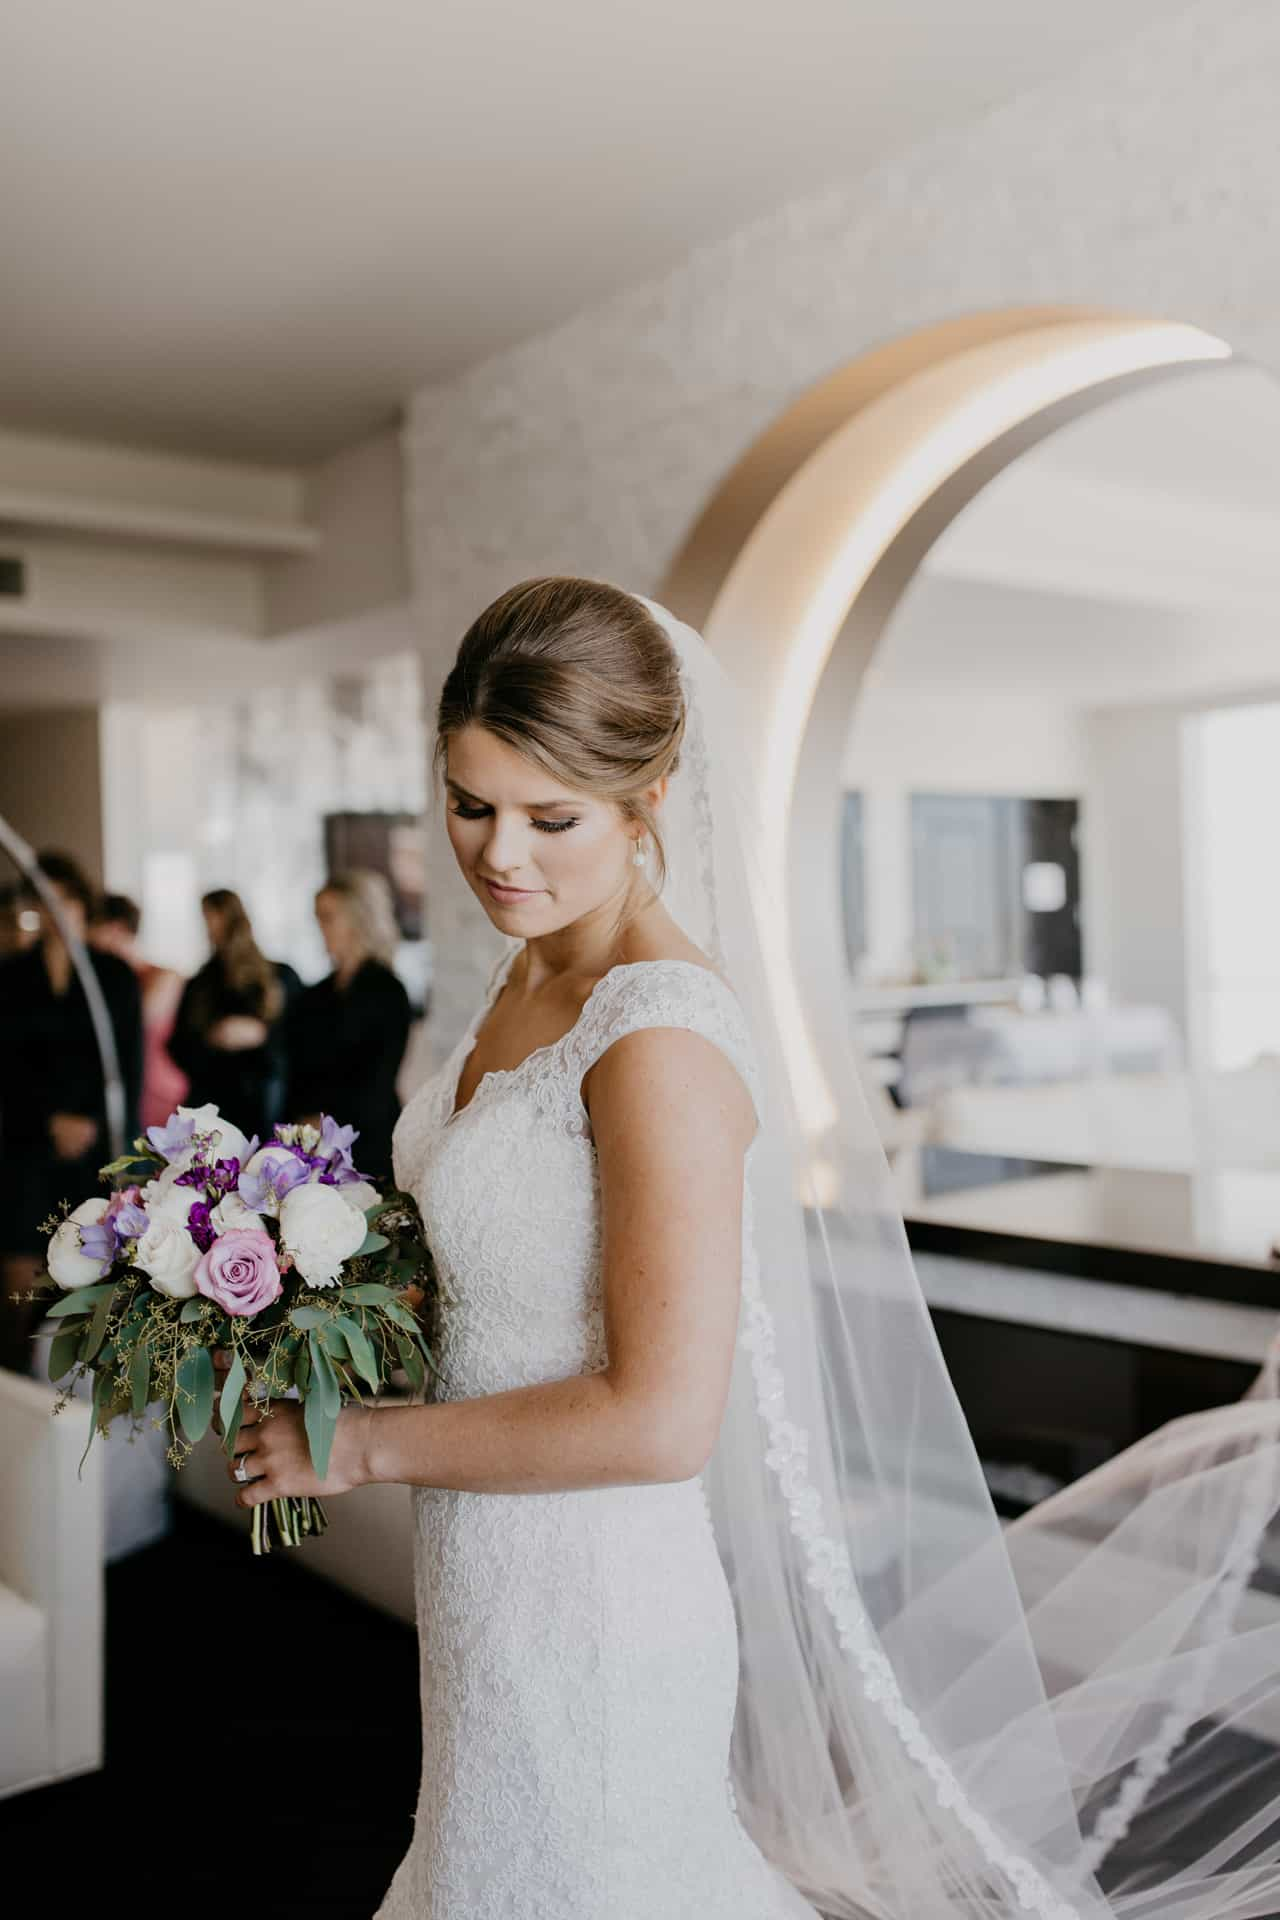 Bride holding flowers at Davenport Grand